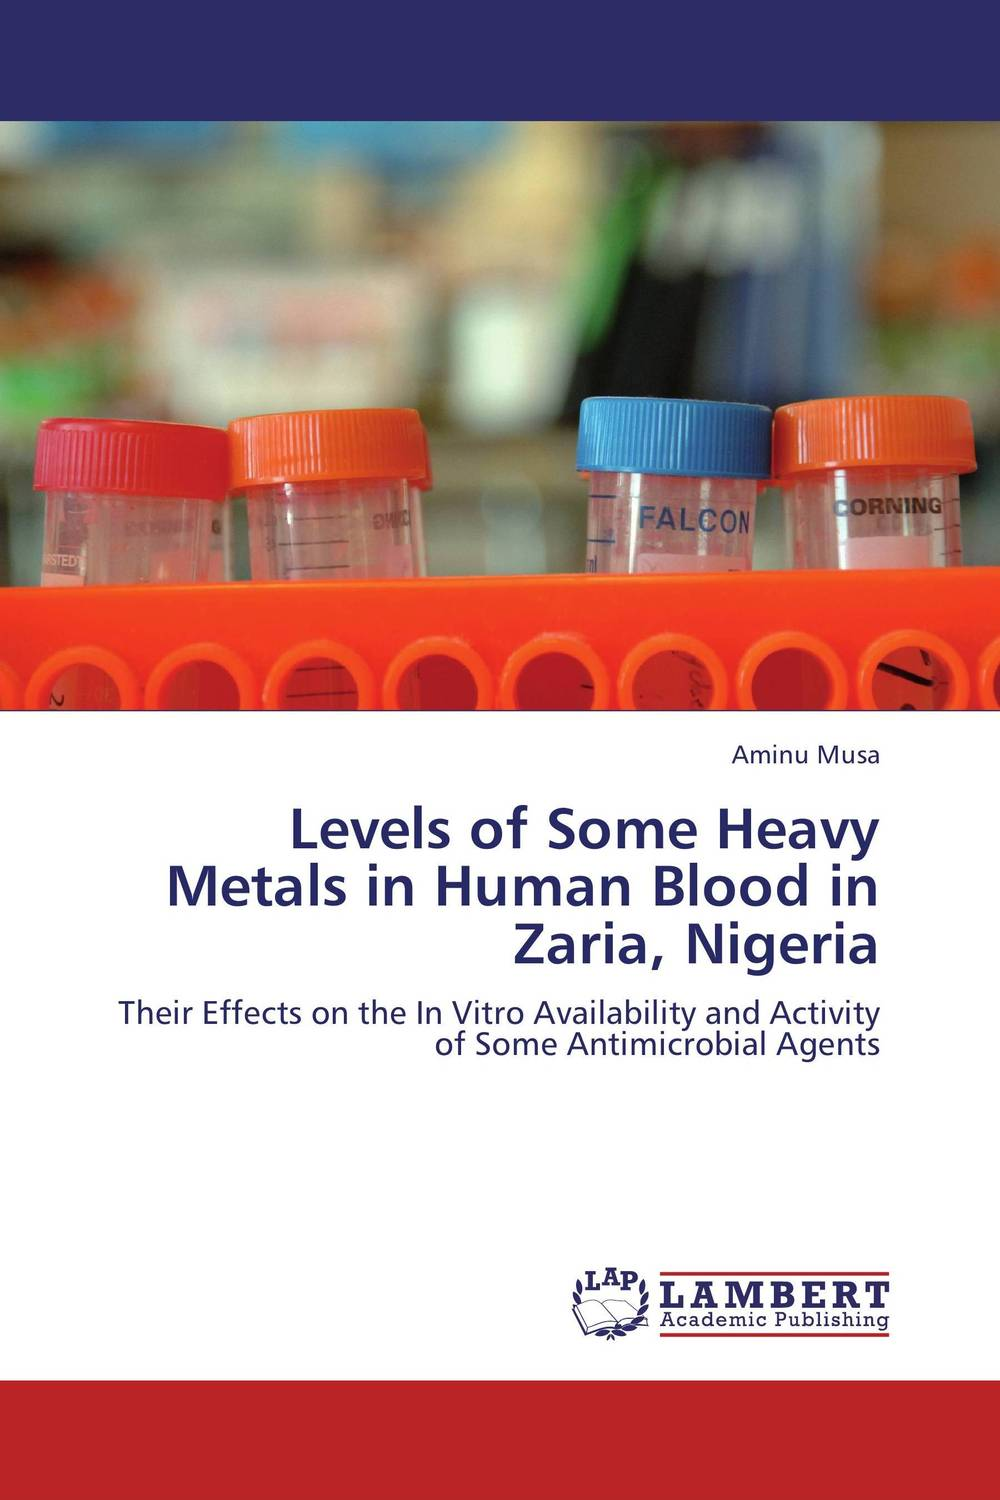 Levels of Some Heavy Metals in Human Blood in Zaria, Nigeria